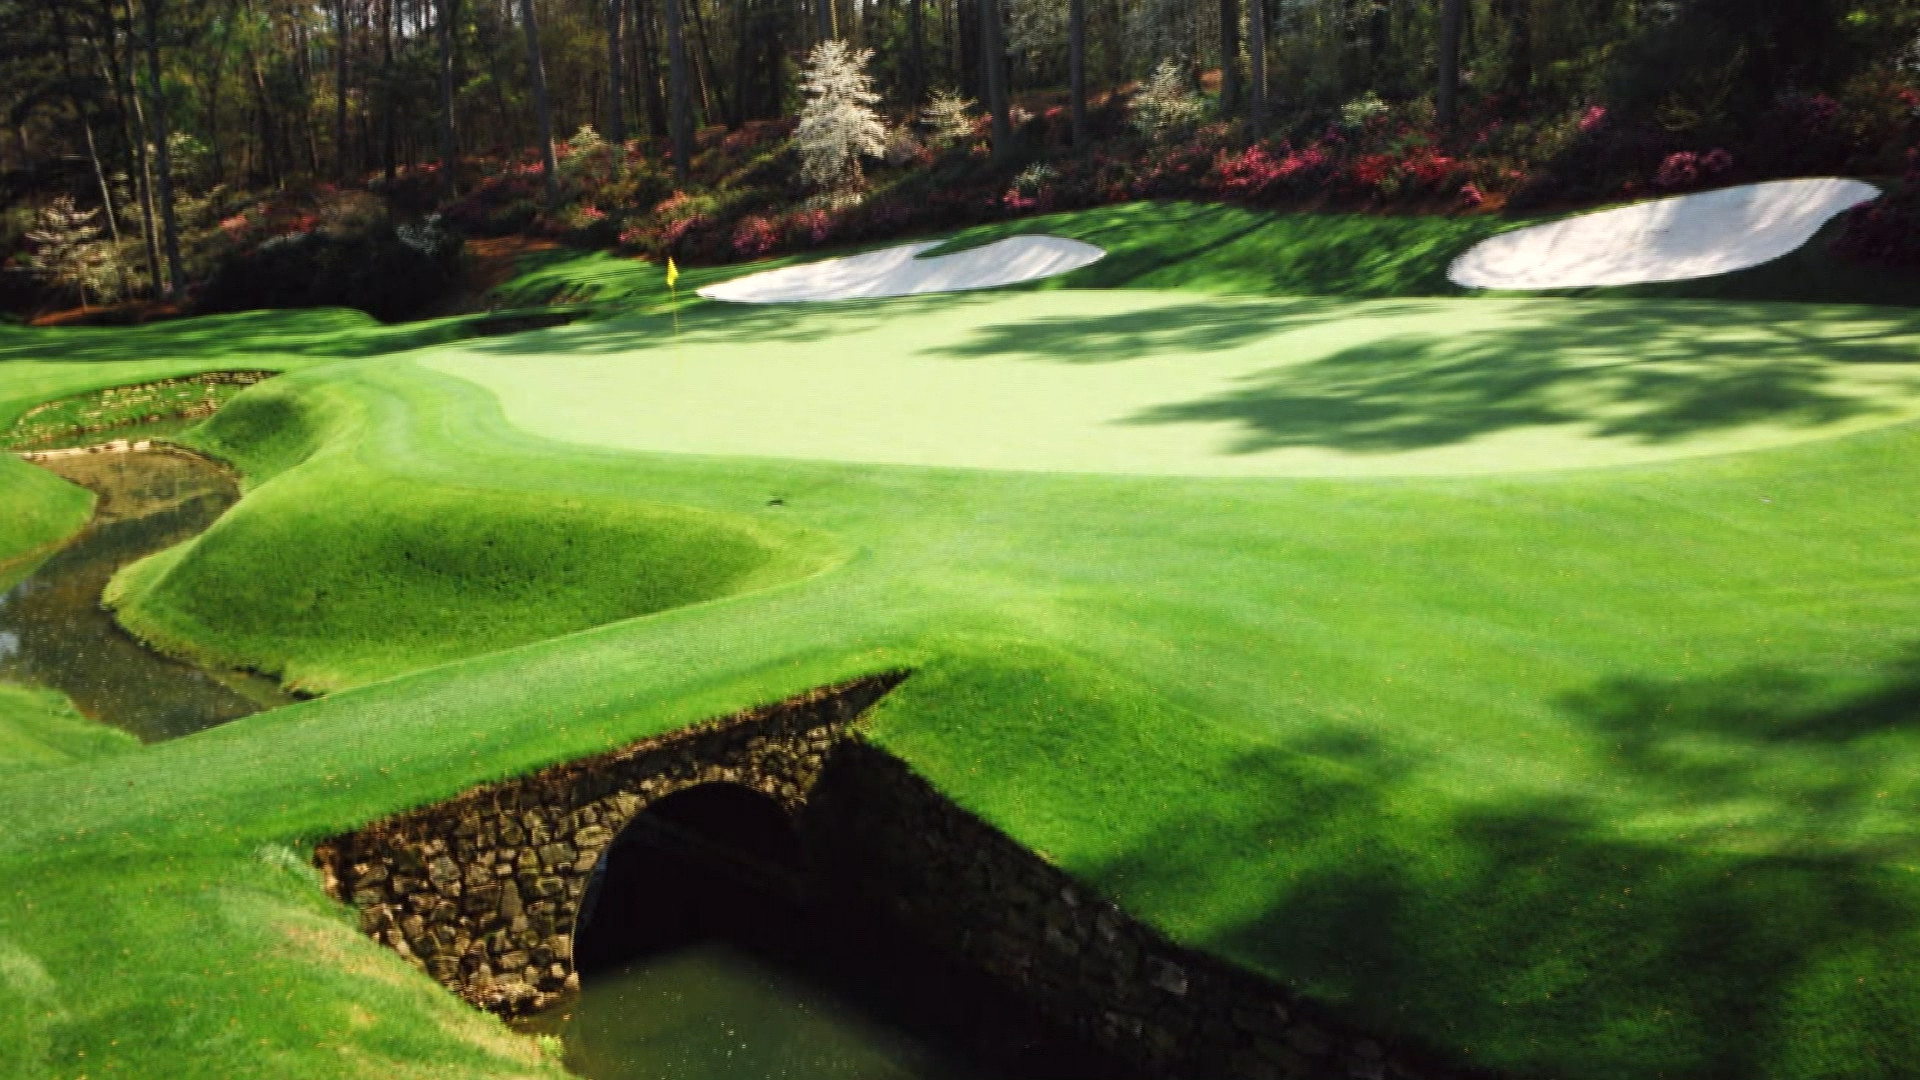 50] 2015 Wallpaper Of Augusta National on WallpaperSafari 1920x1080